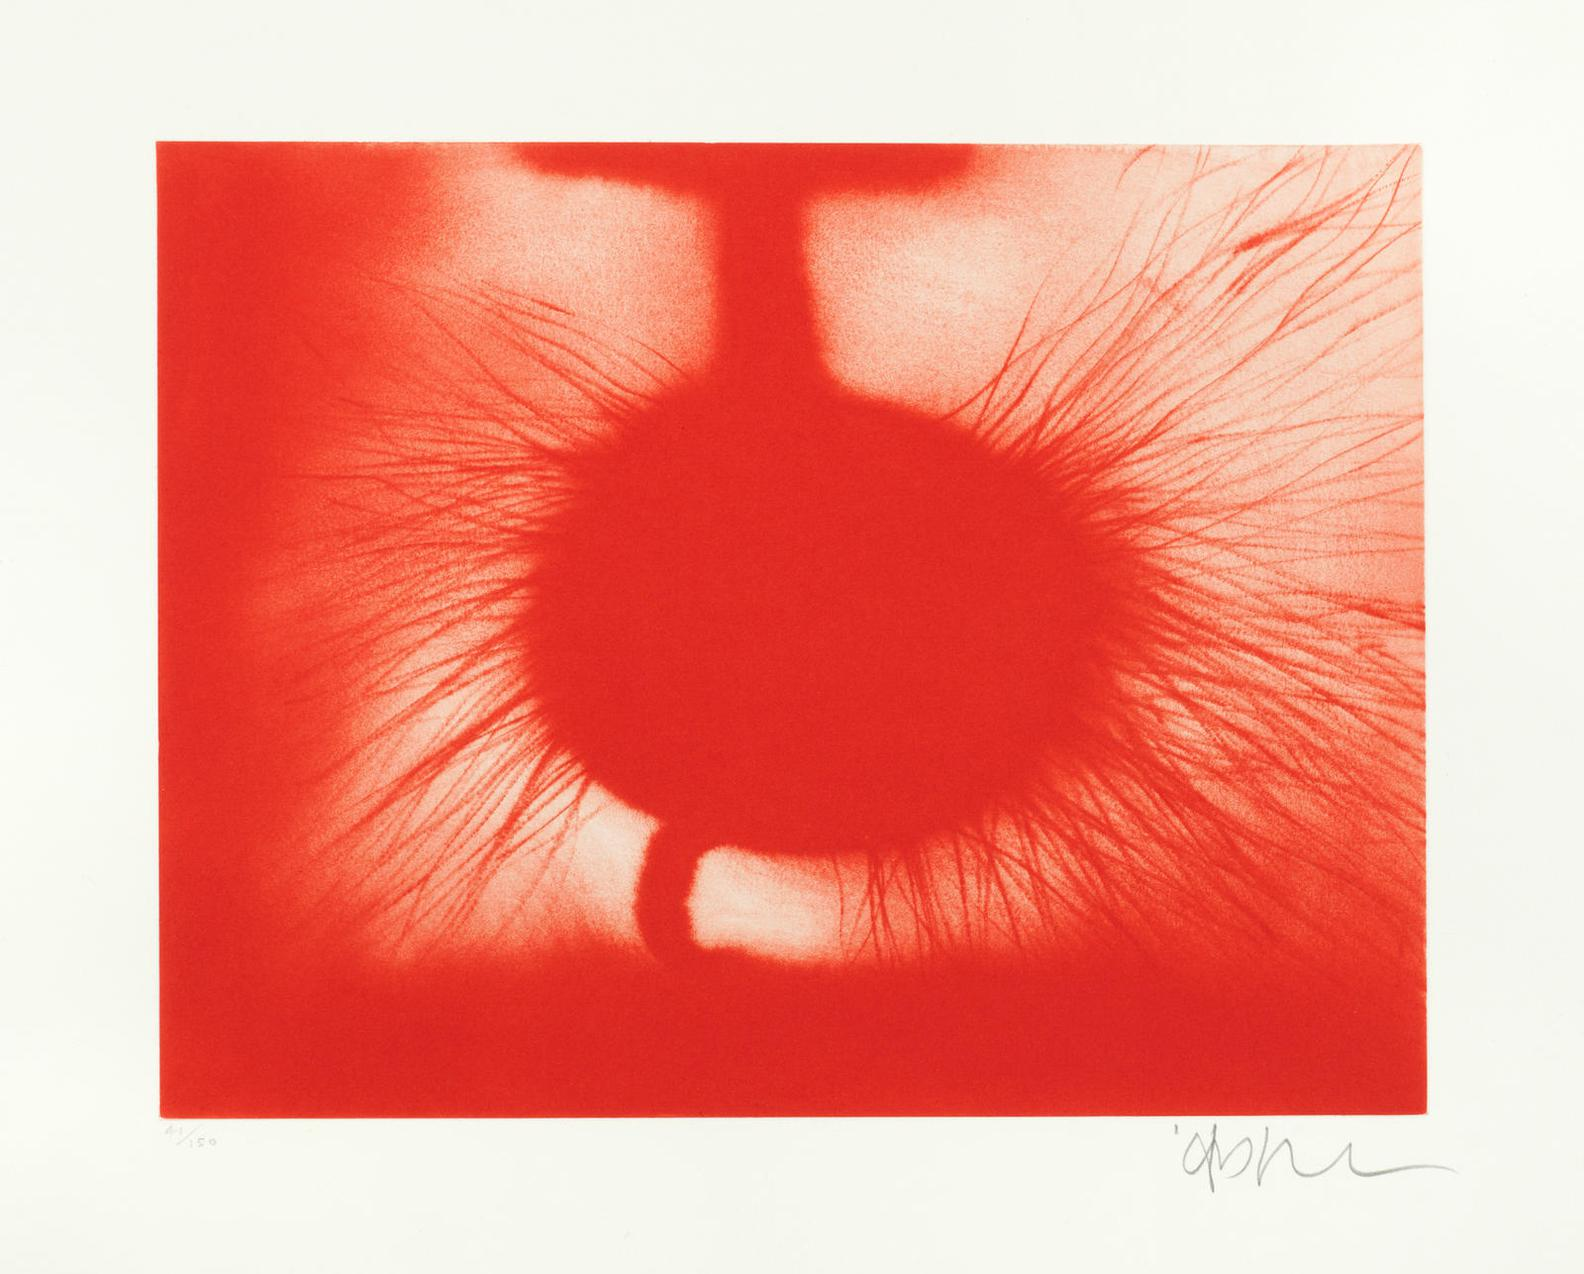 Anish Kapoor Cbe Ra - Untitled-2014